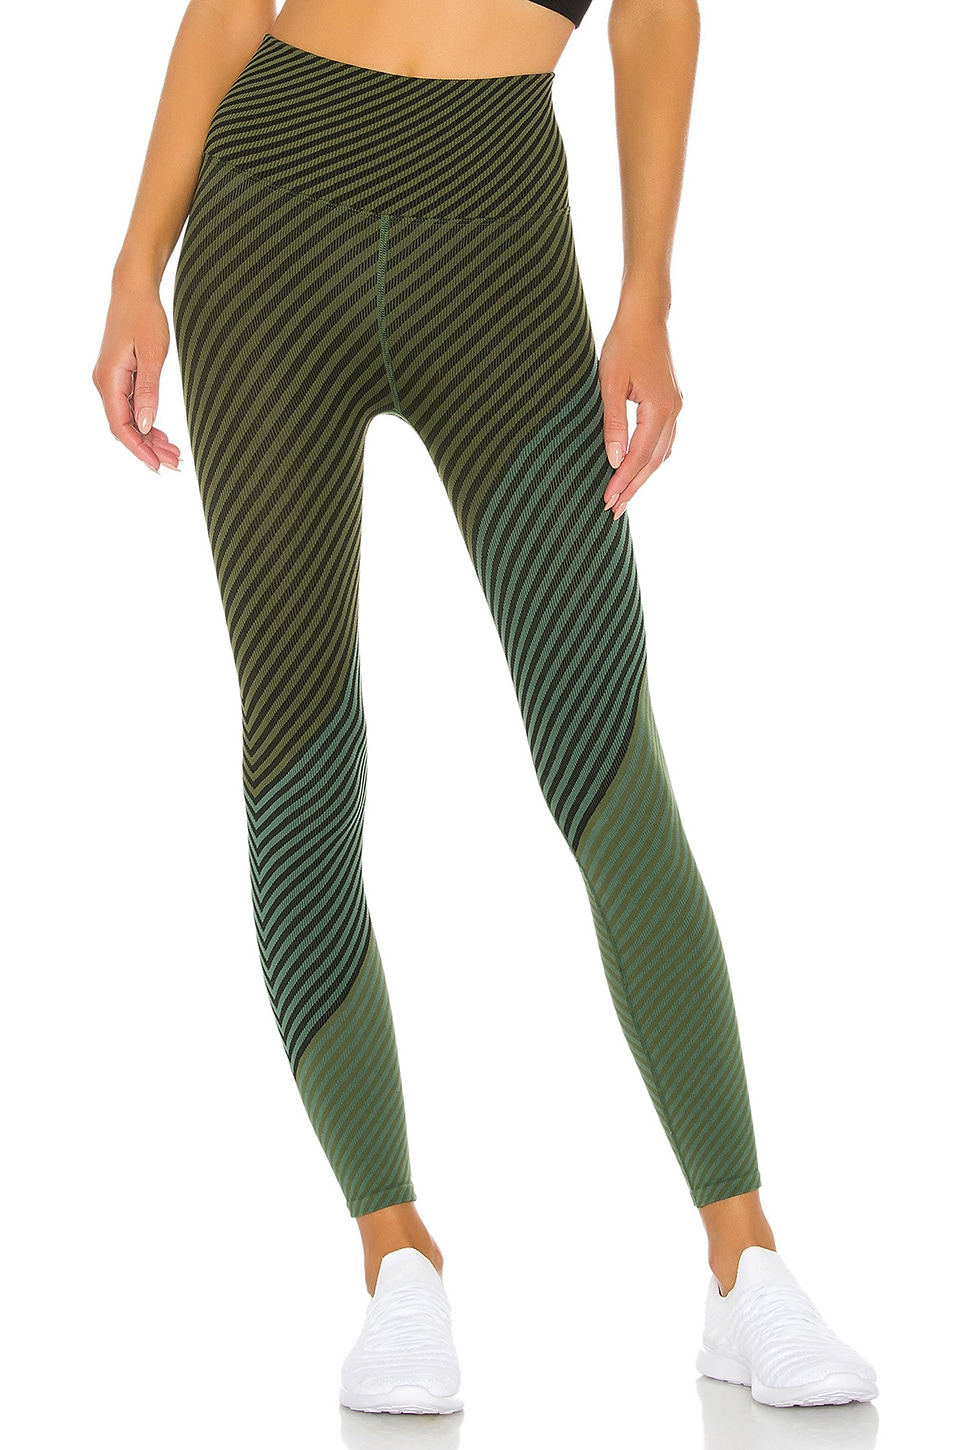 Free People X FP Movement Finders Keepers Legging in Green Combo